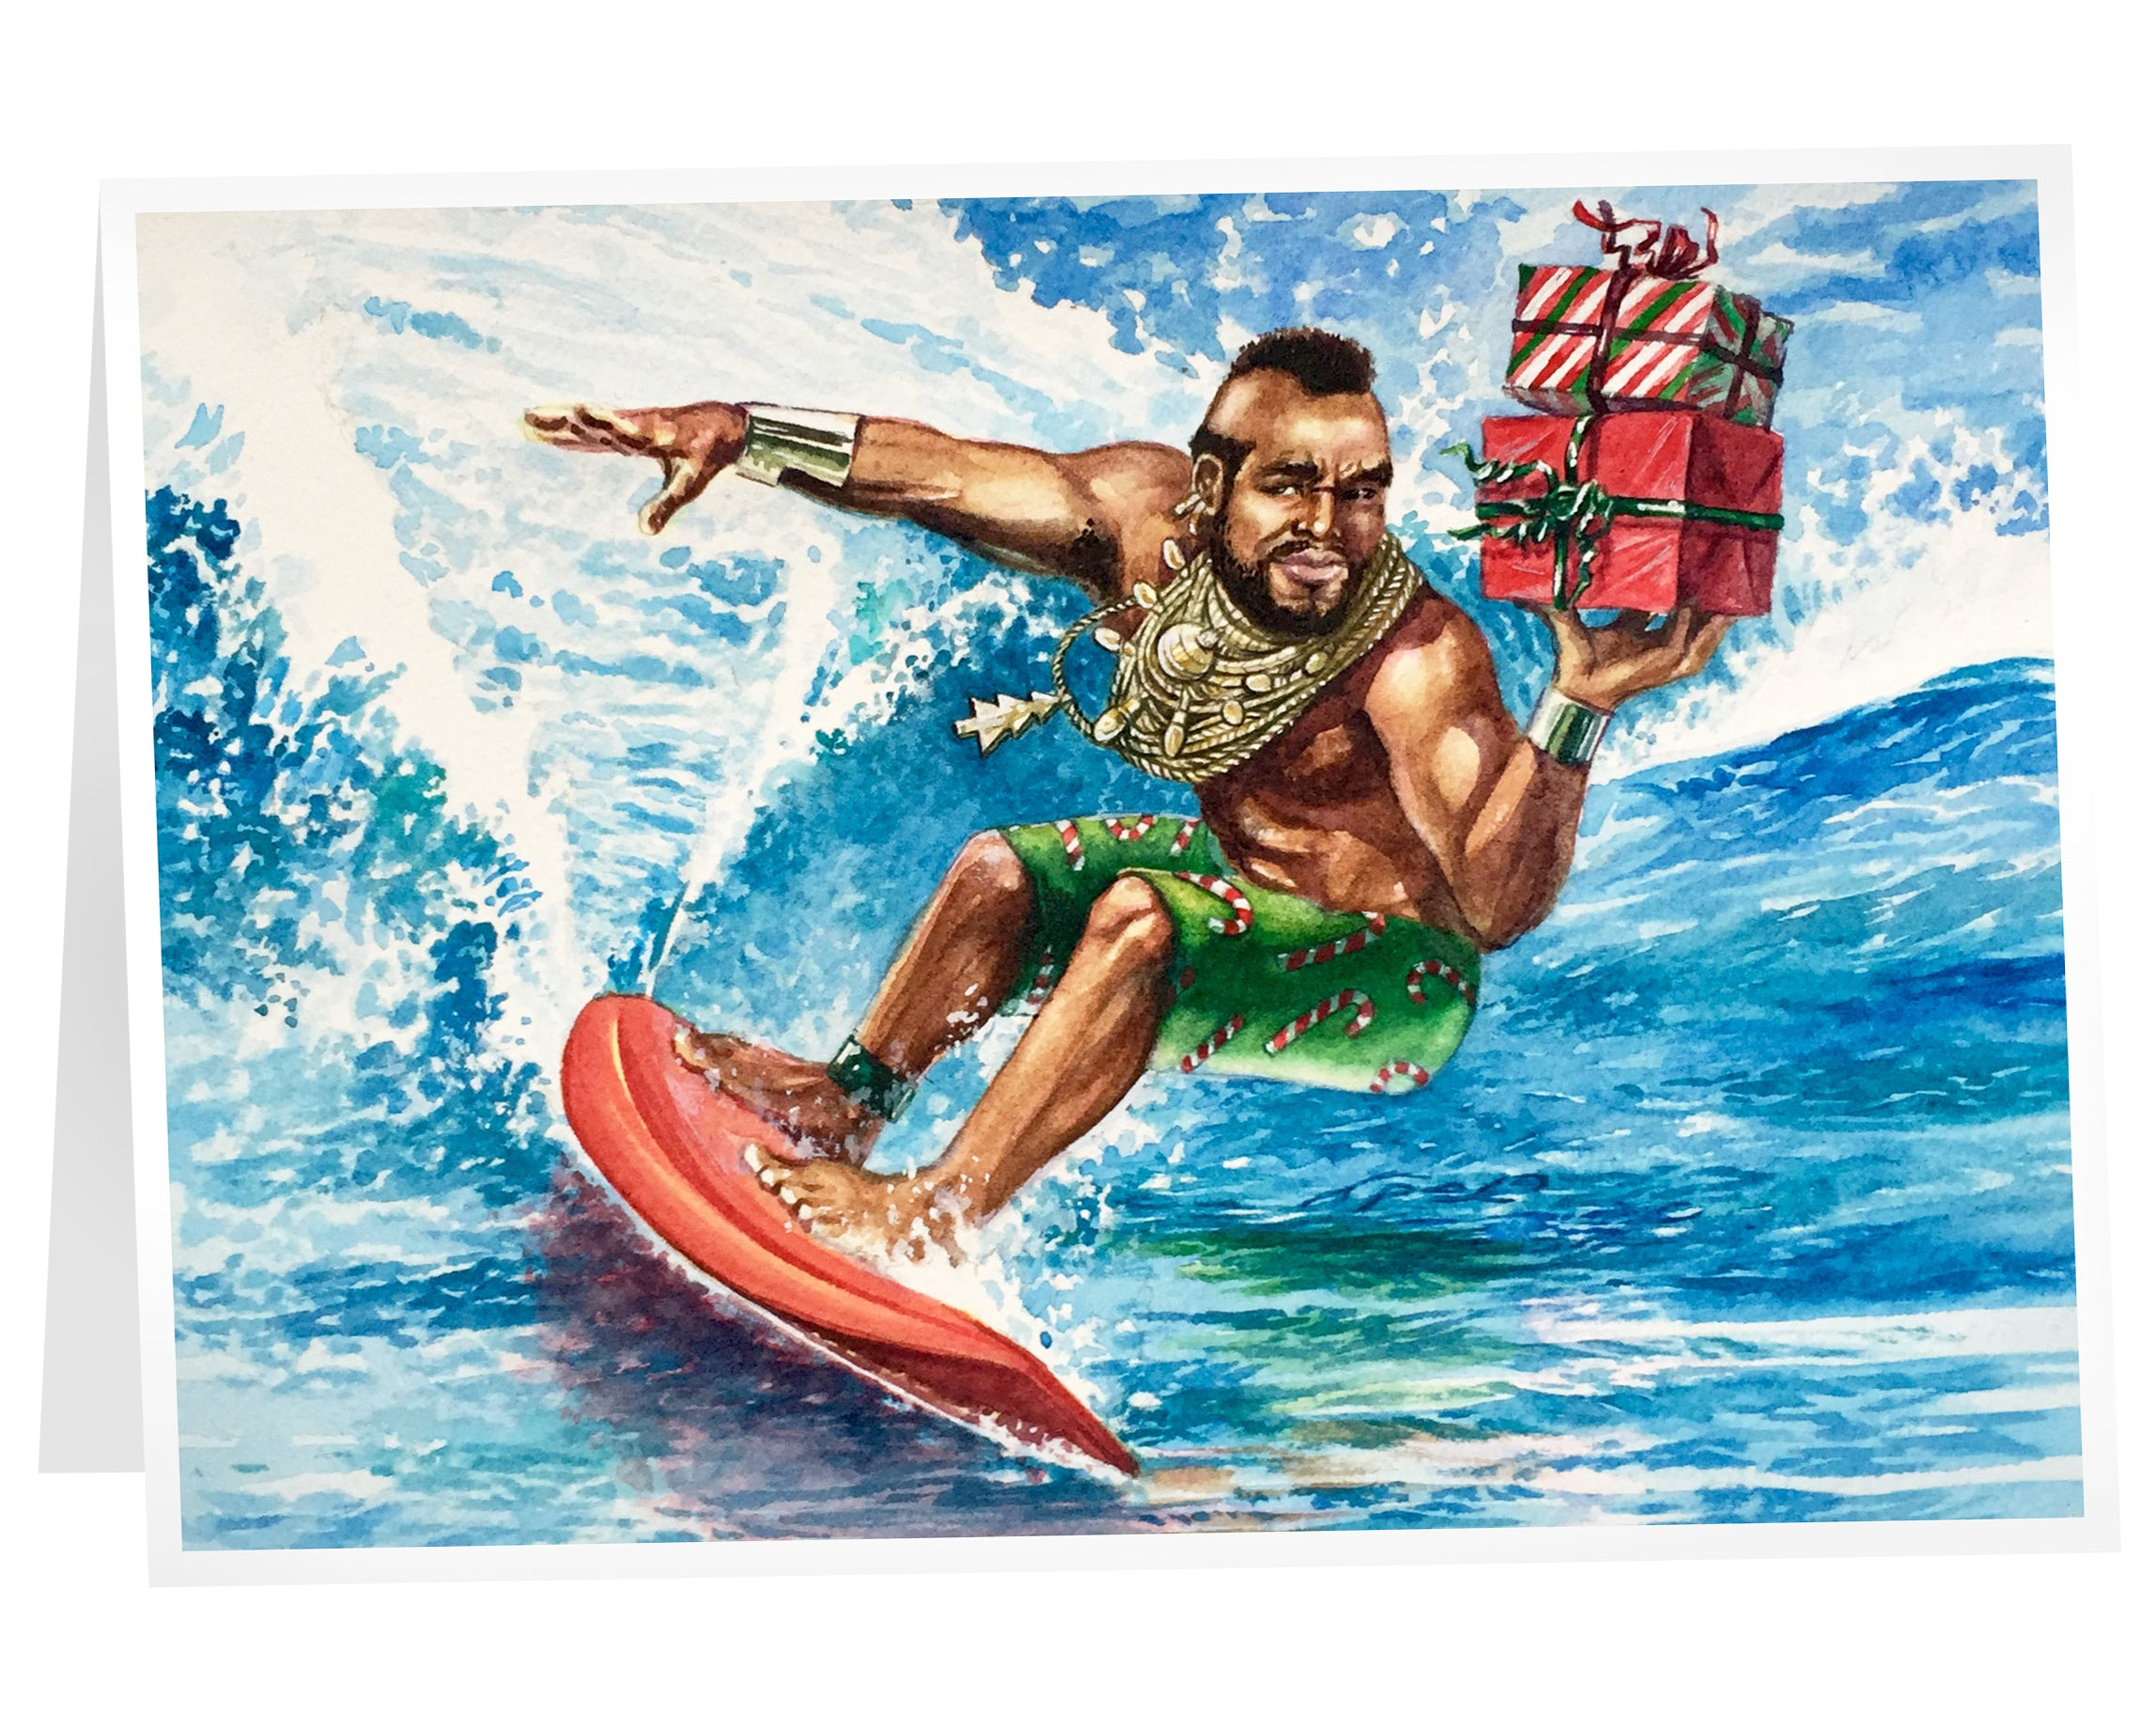 """Surf's Up!!"" T-mas cards"